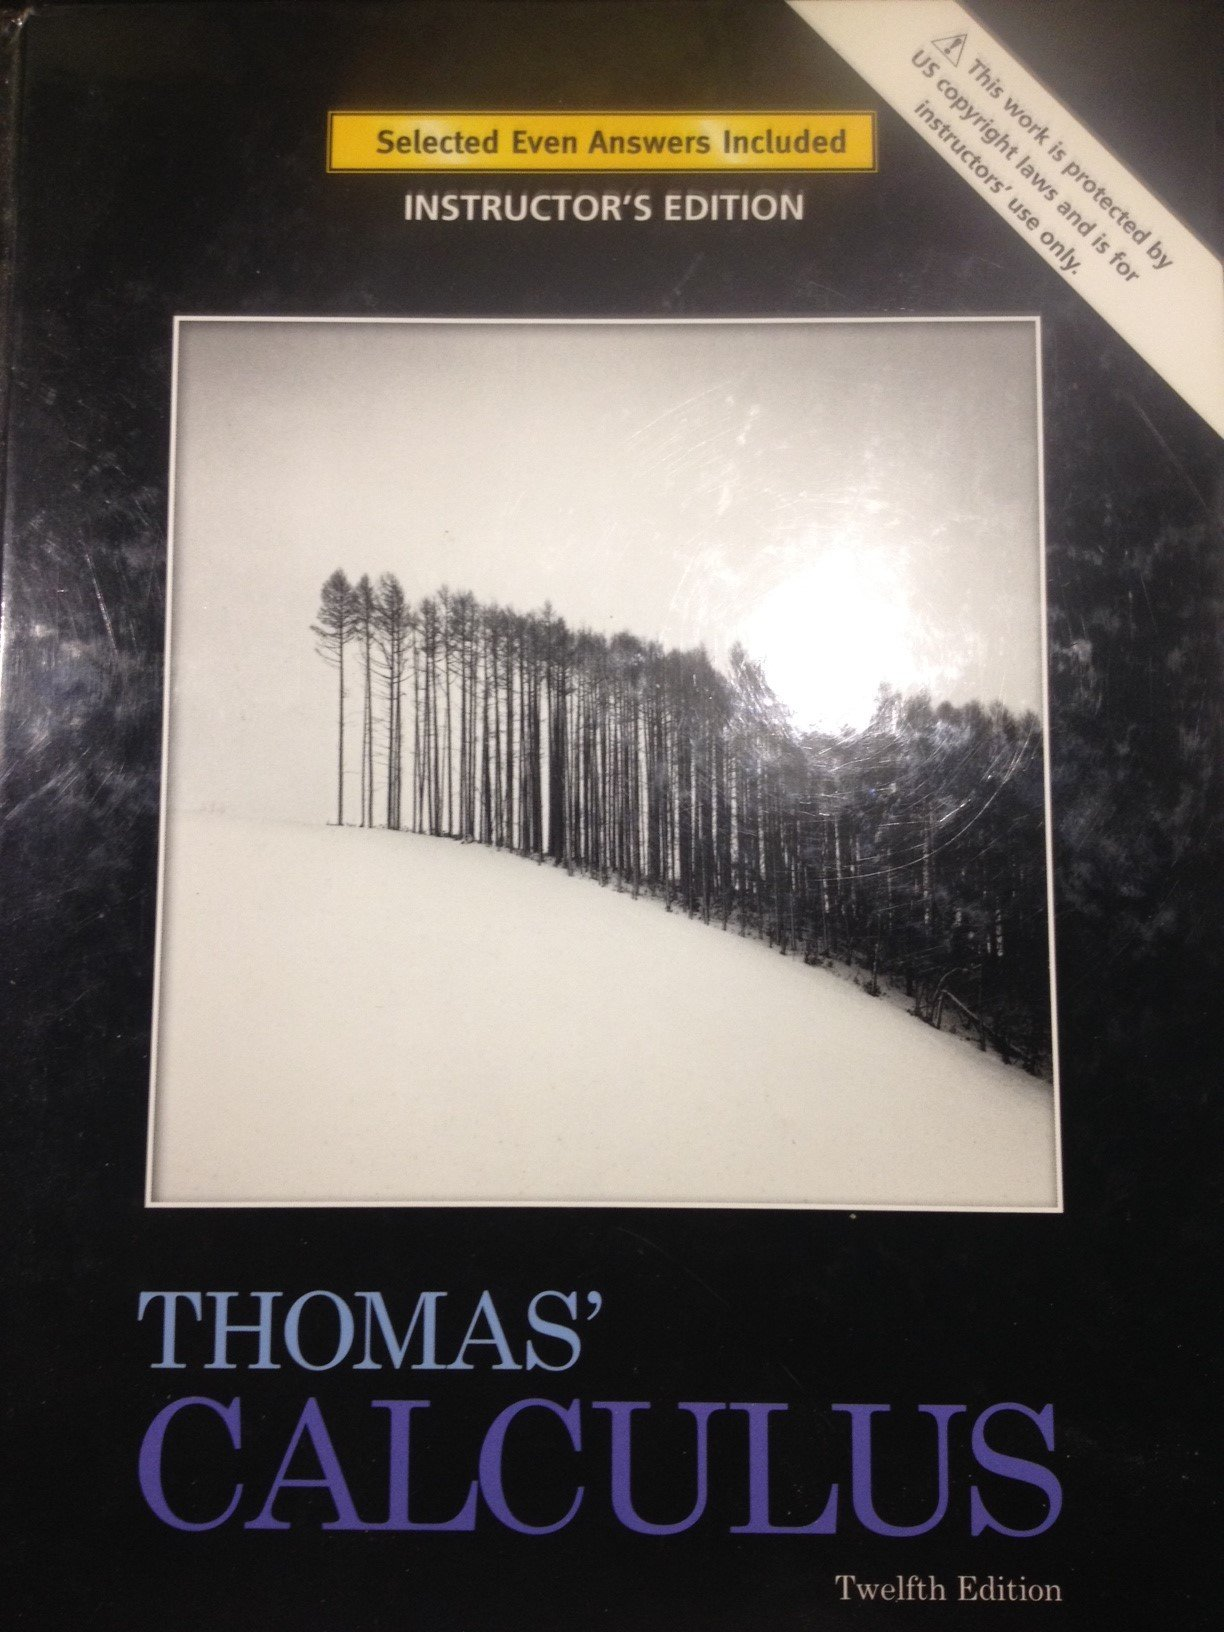 Instructor's Edition for Thomas' Calculus (12th Edition): Jr. George B.  Thomas;Maurice D. Weir;Joel R. Hass: 9780321600752: Amazon.com: Books